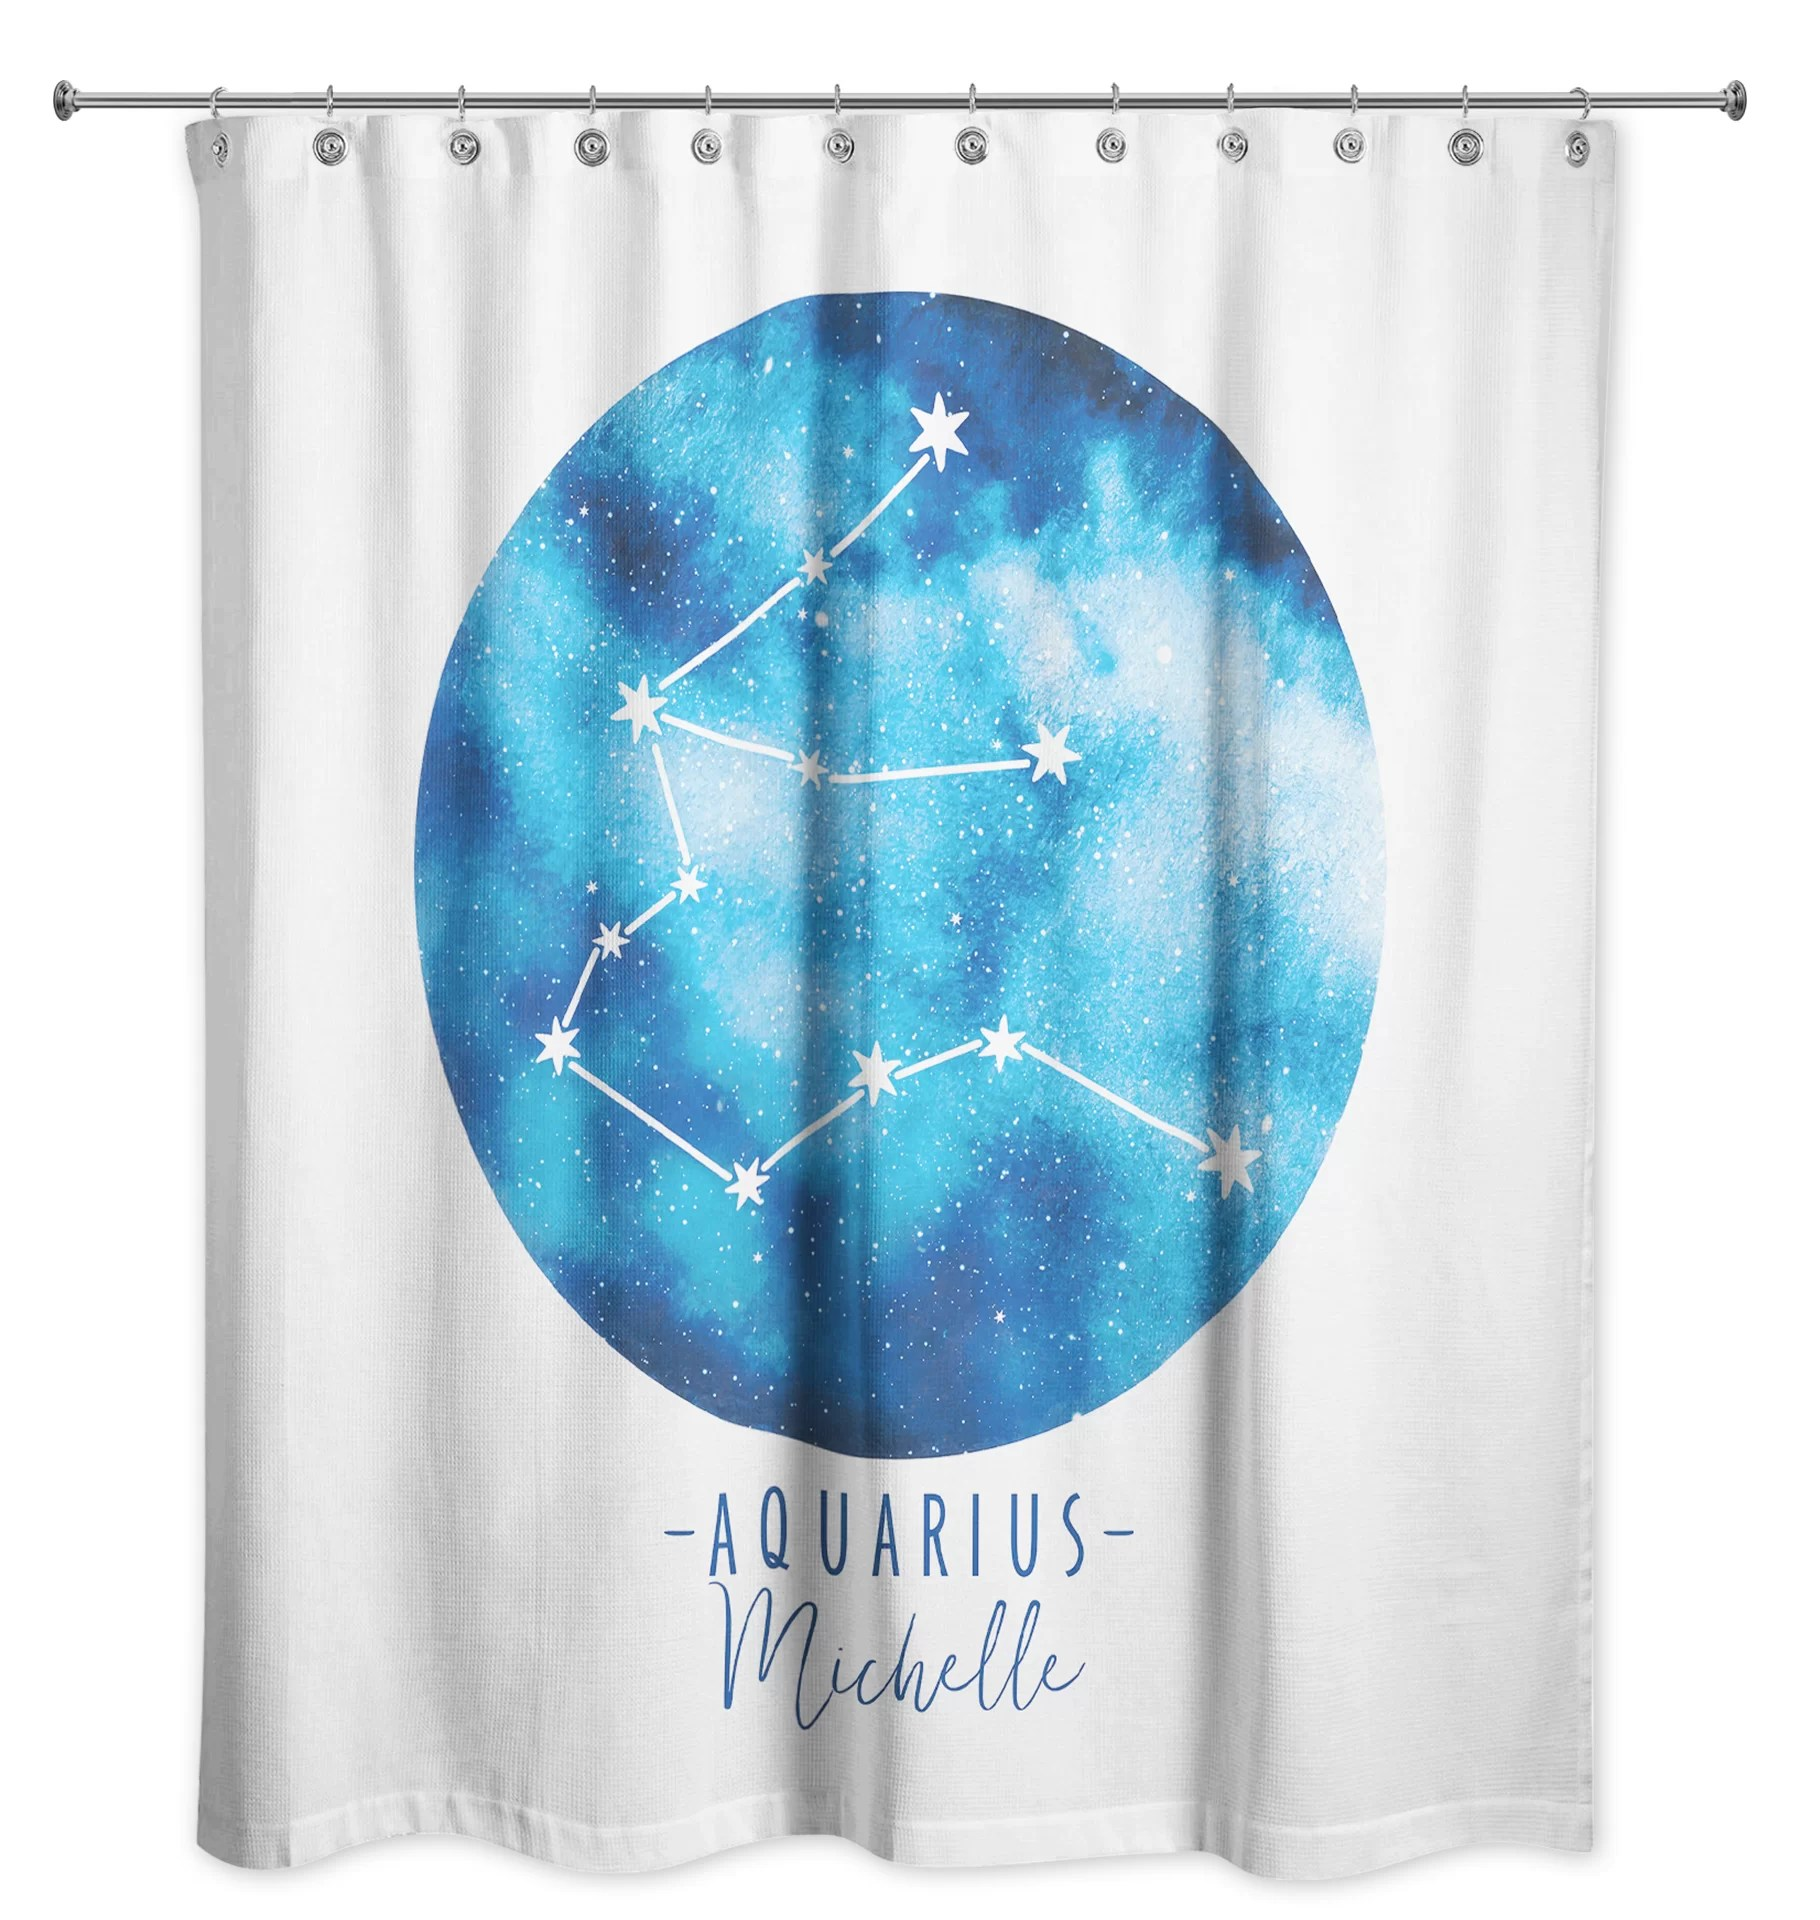 dulin personalized single shower curtain